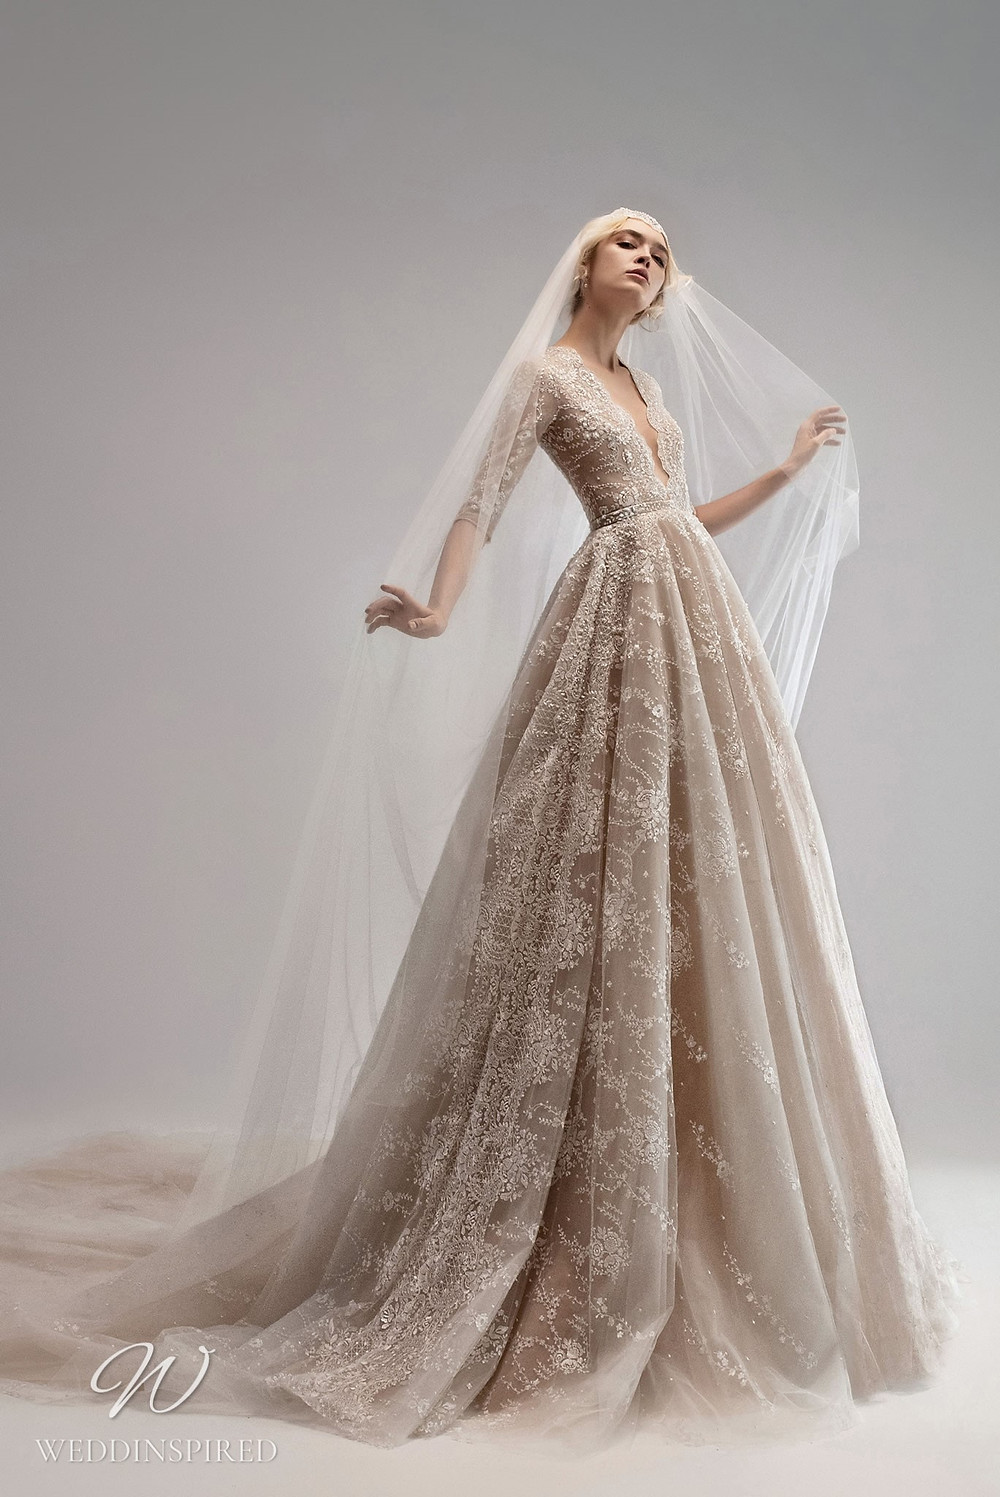 An Ersa Atelier 2021 blush ball gown wedding dress with a tulle skirt, half sleeves and beading